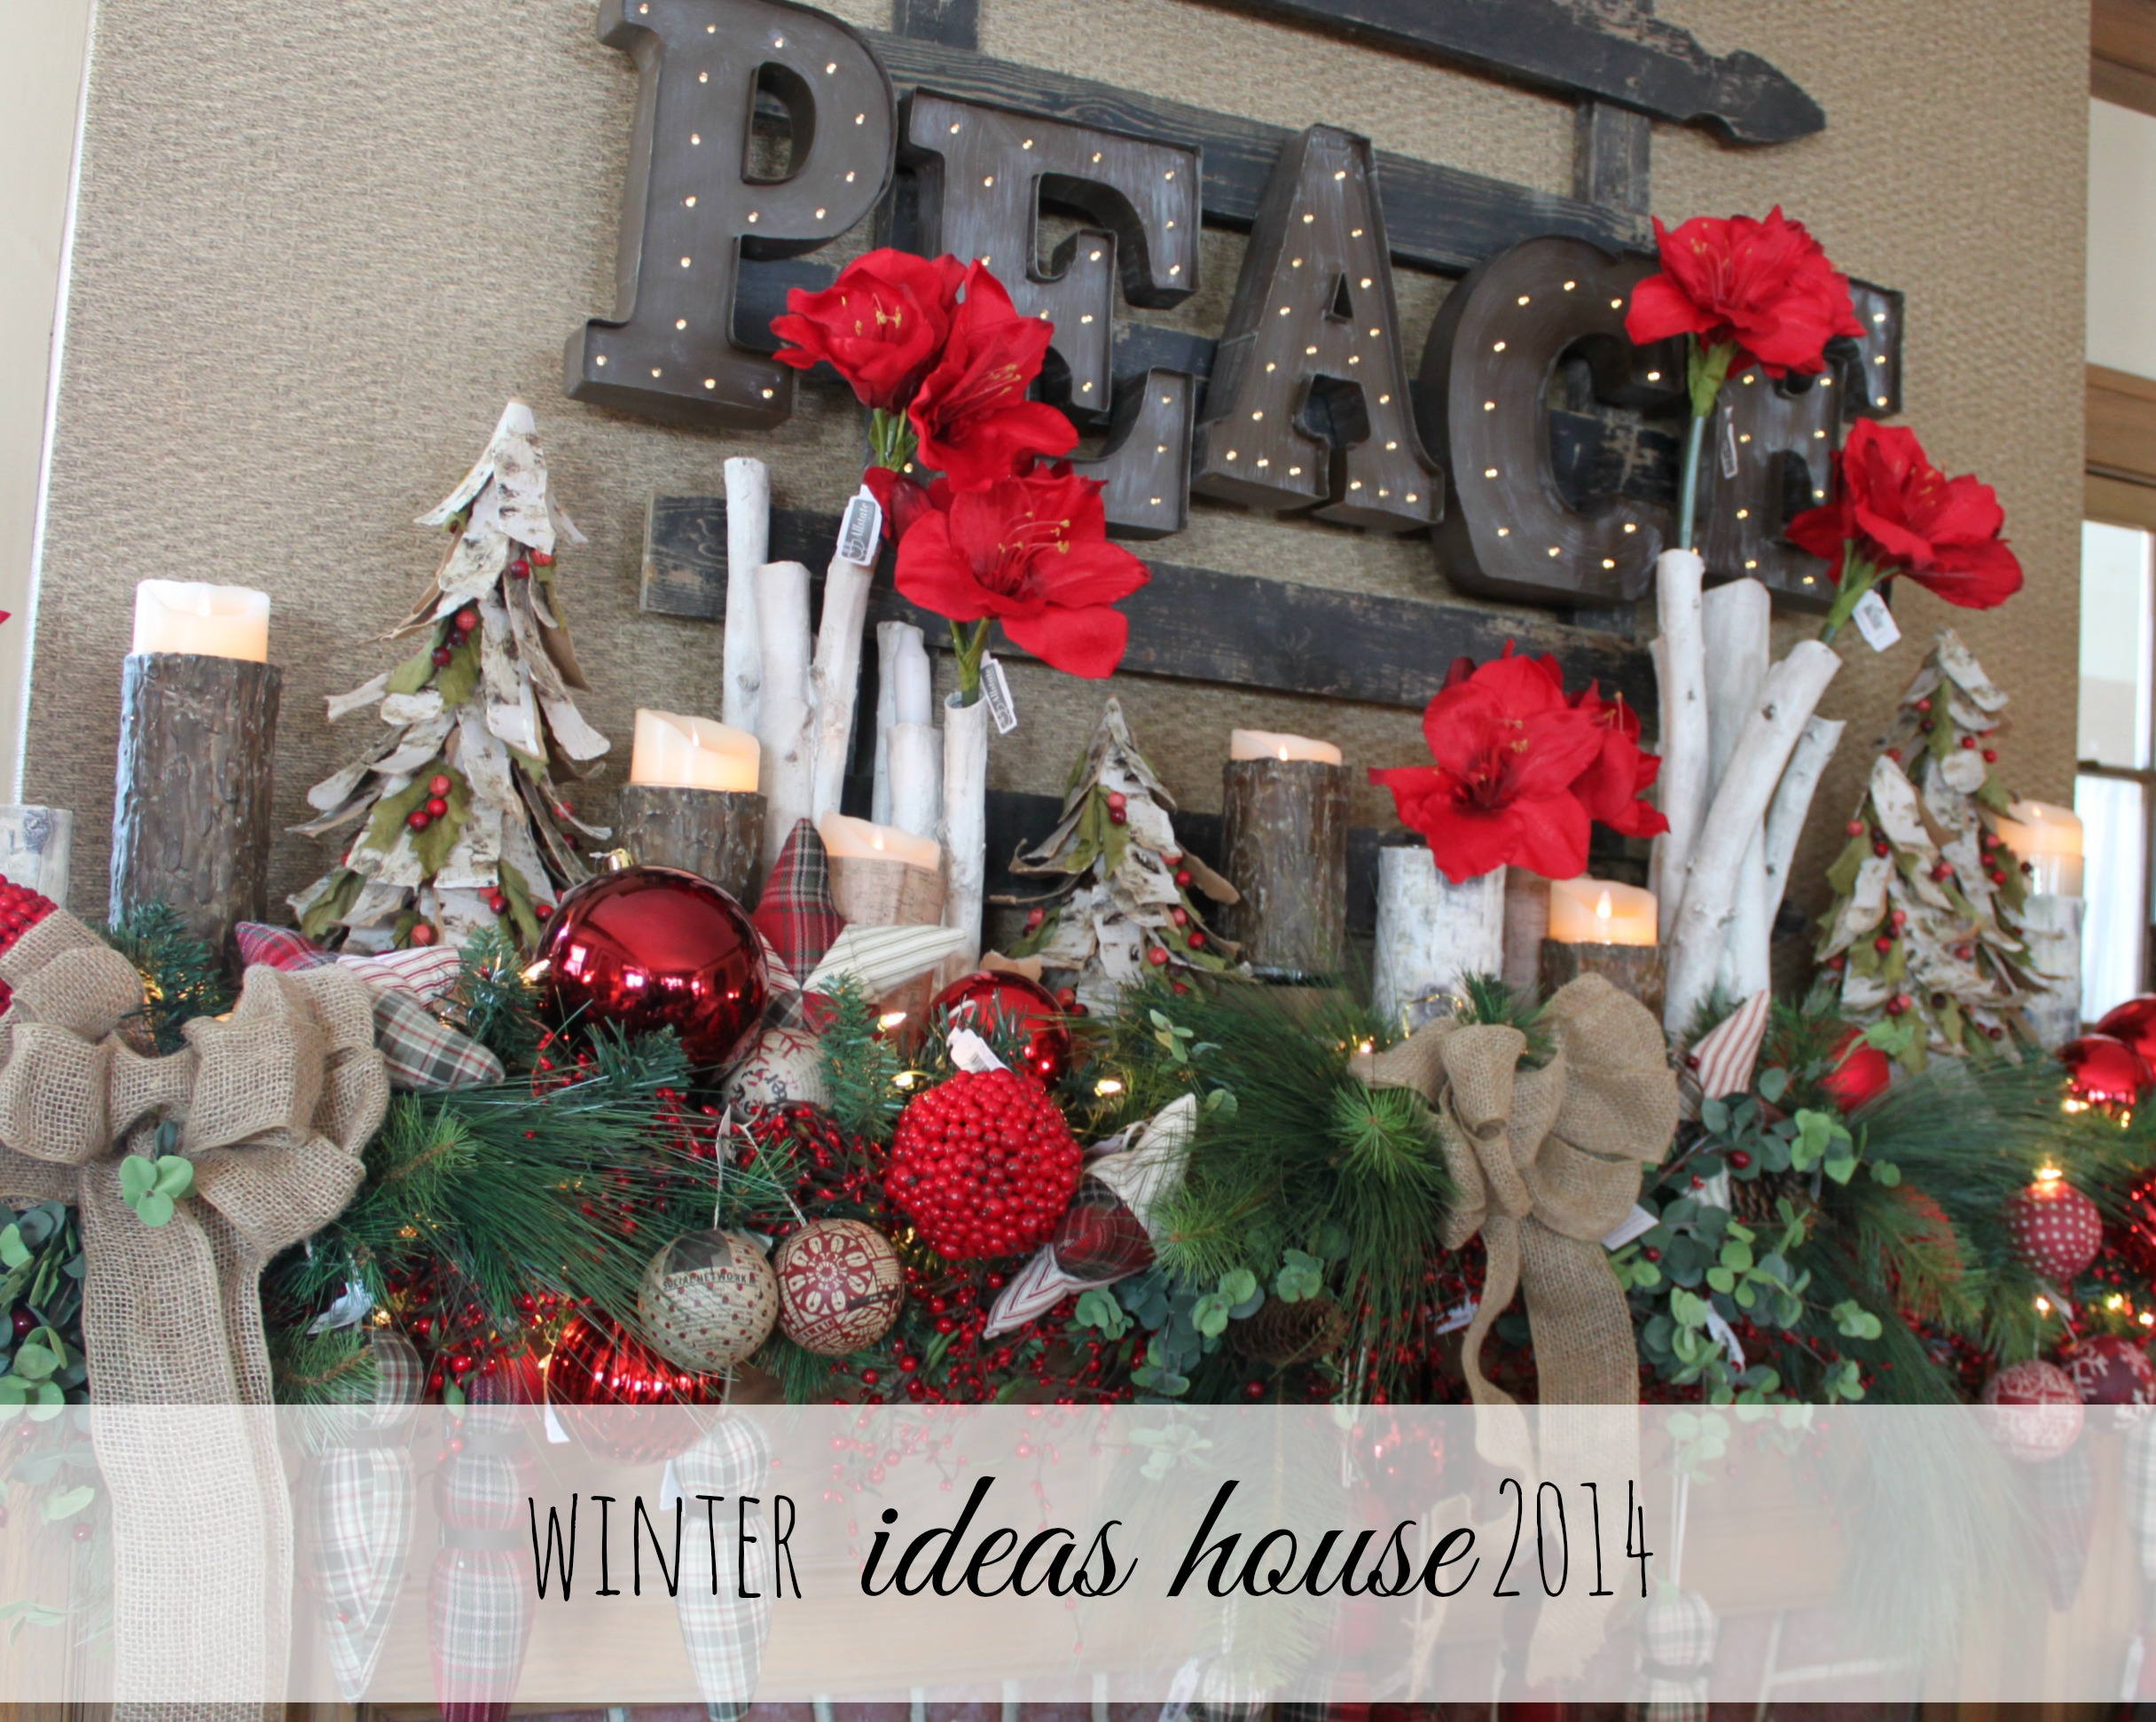 Winter Ideas House 2014